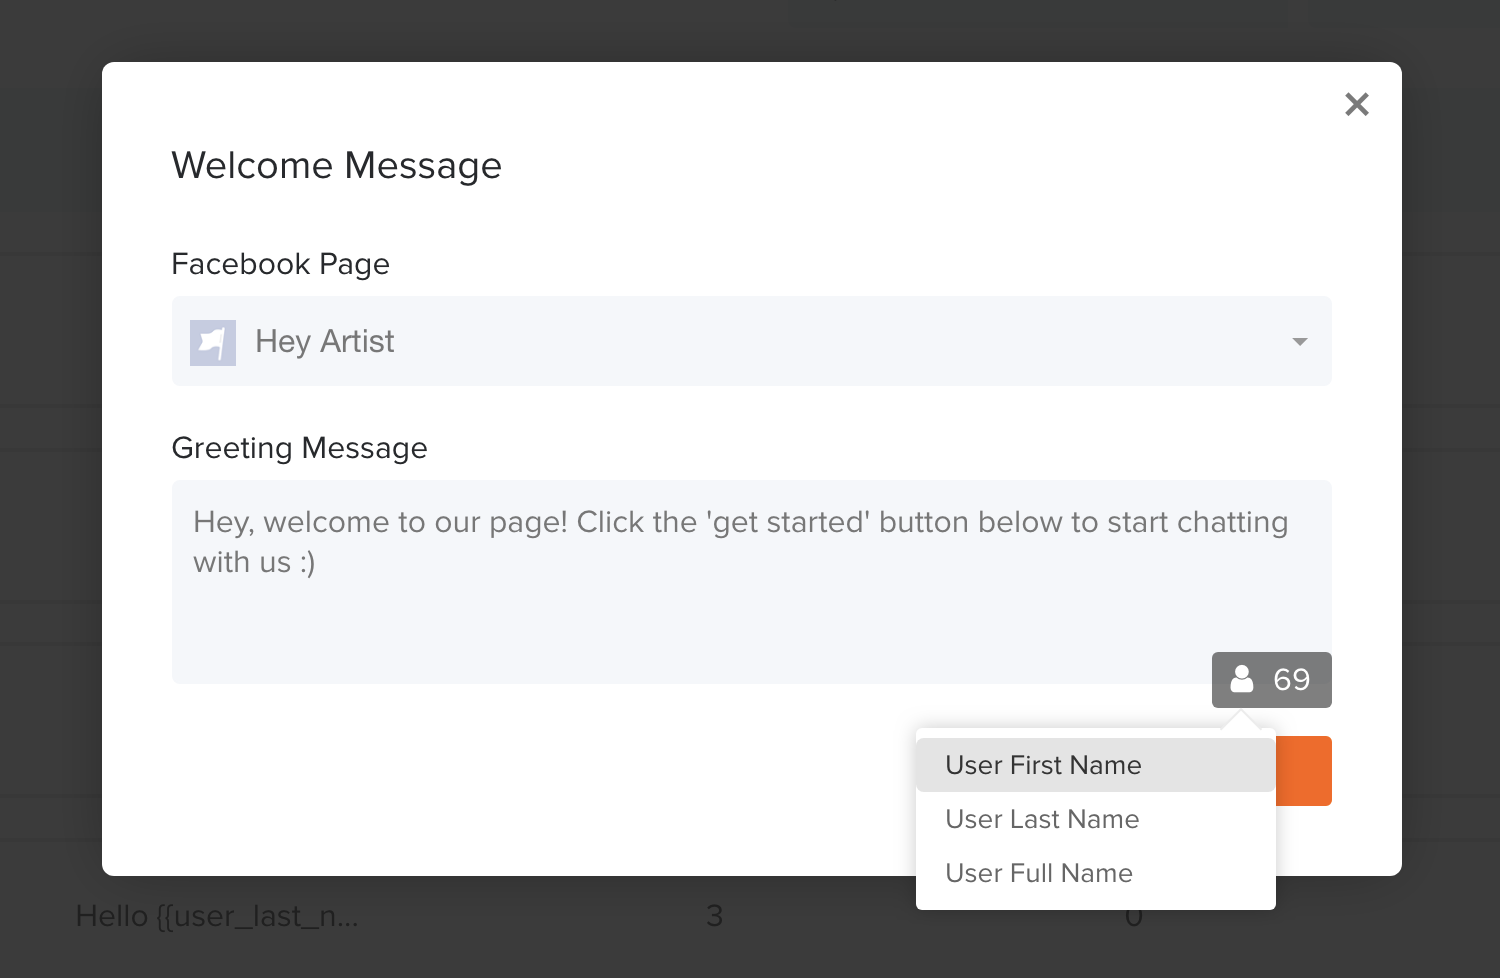 How to set up a welcome message msghero help center select your facebook page and enter a greeting message this is a short message limited to 160 characters in which you can introduce your businessbrand kristyandbryce Images